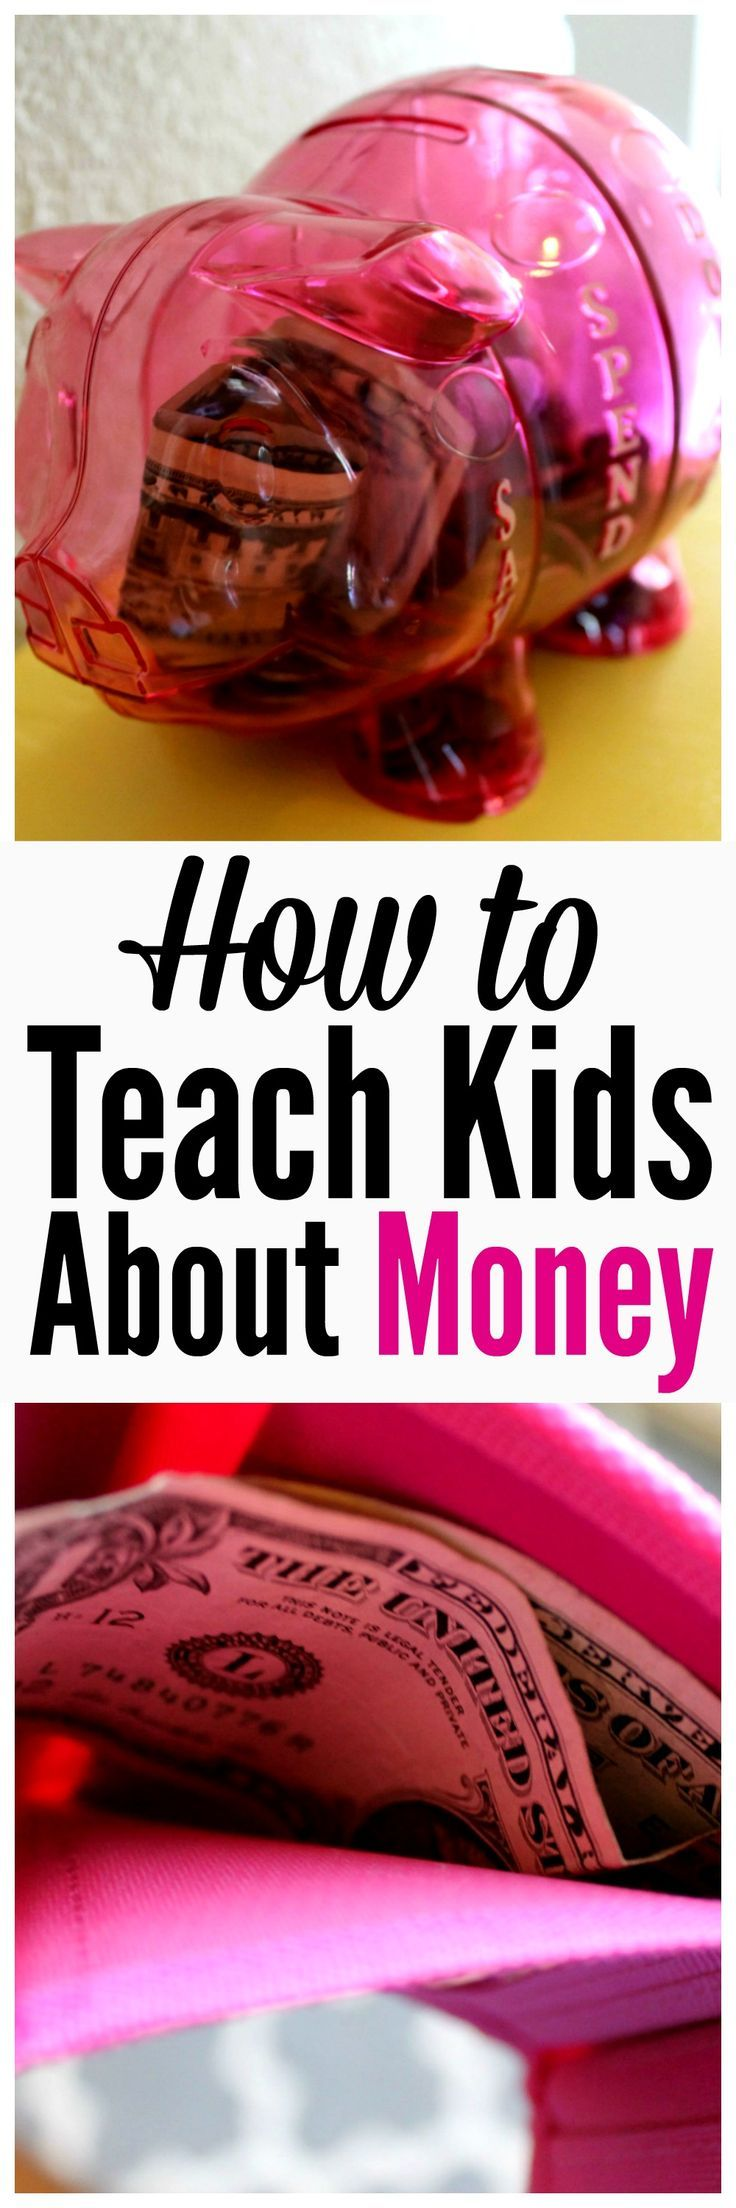 How to Teach Kids About Money | Teaching Kids About Saving Money | Piggy Banks for Kids